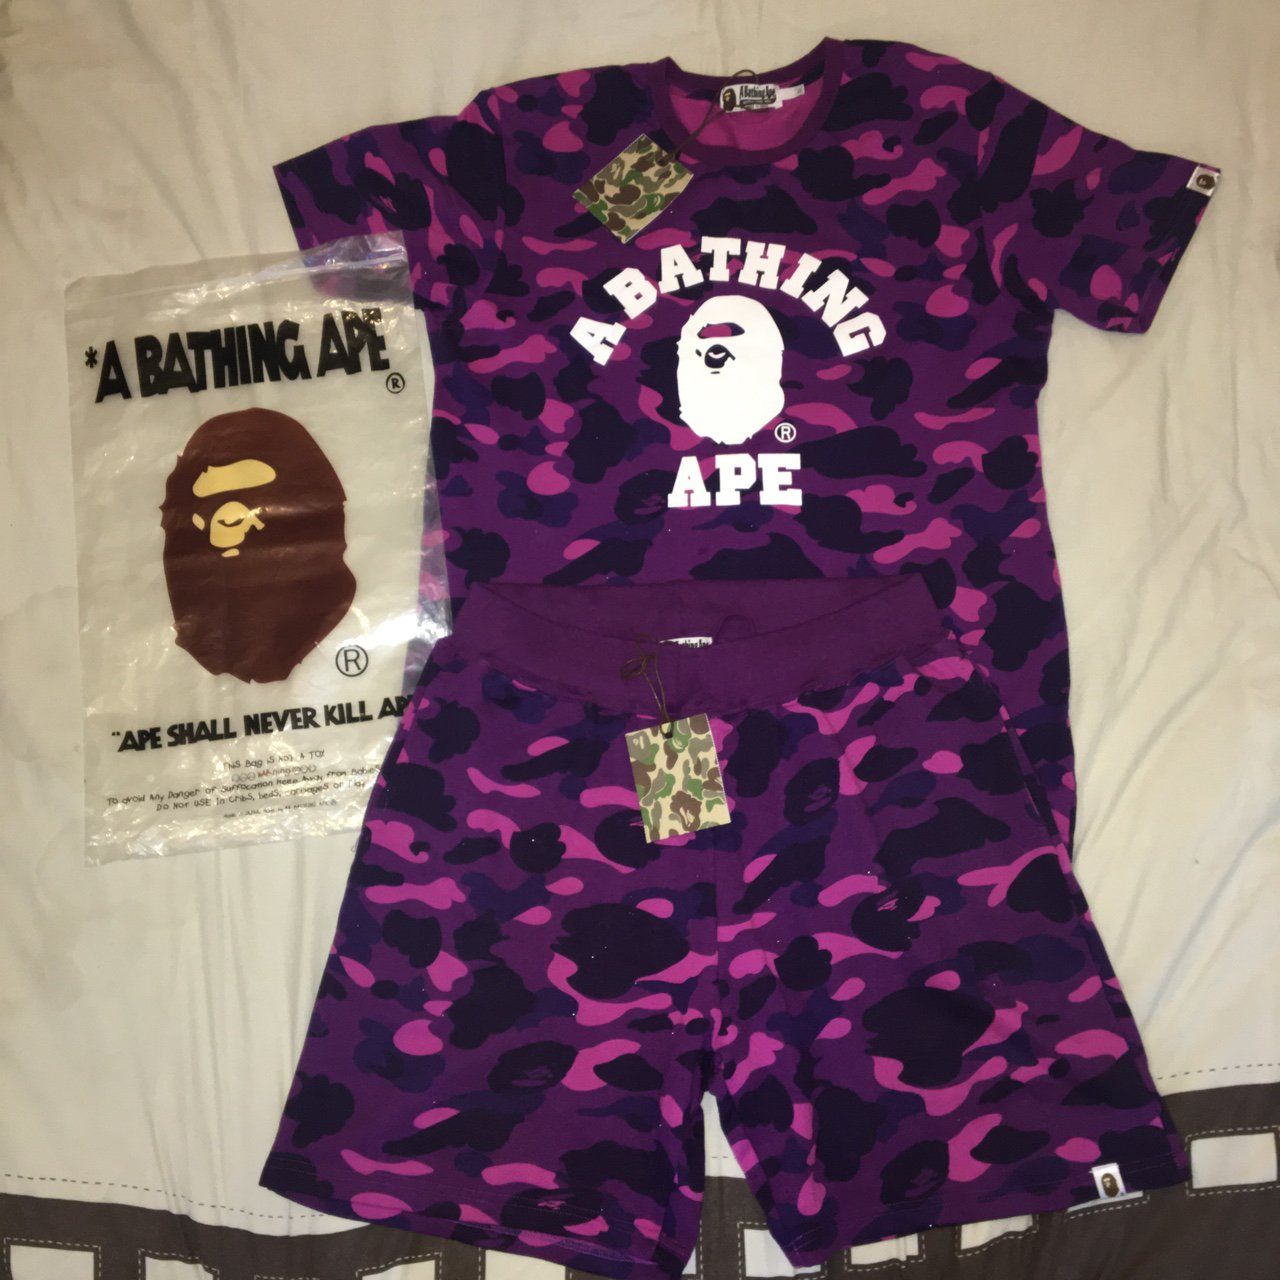 90731ca91 Bape T-Shirt & Shorts. DM BEFORE YOU BUY! Purple Camo 😈. - - Depop